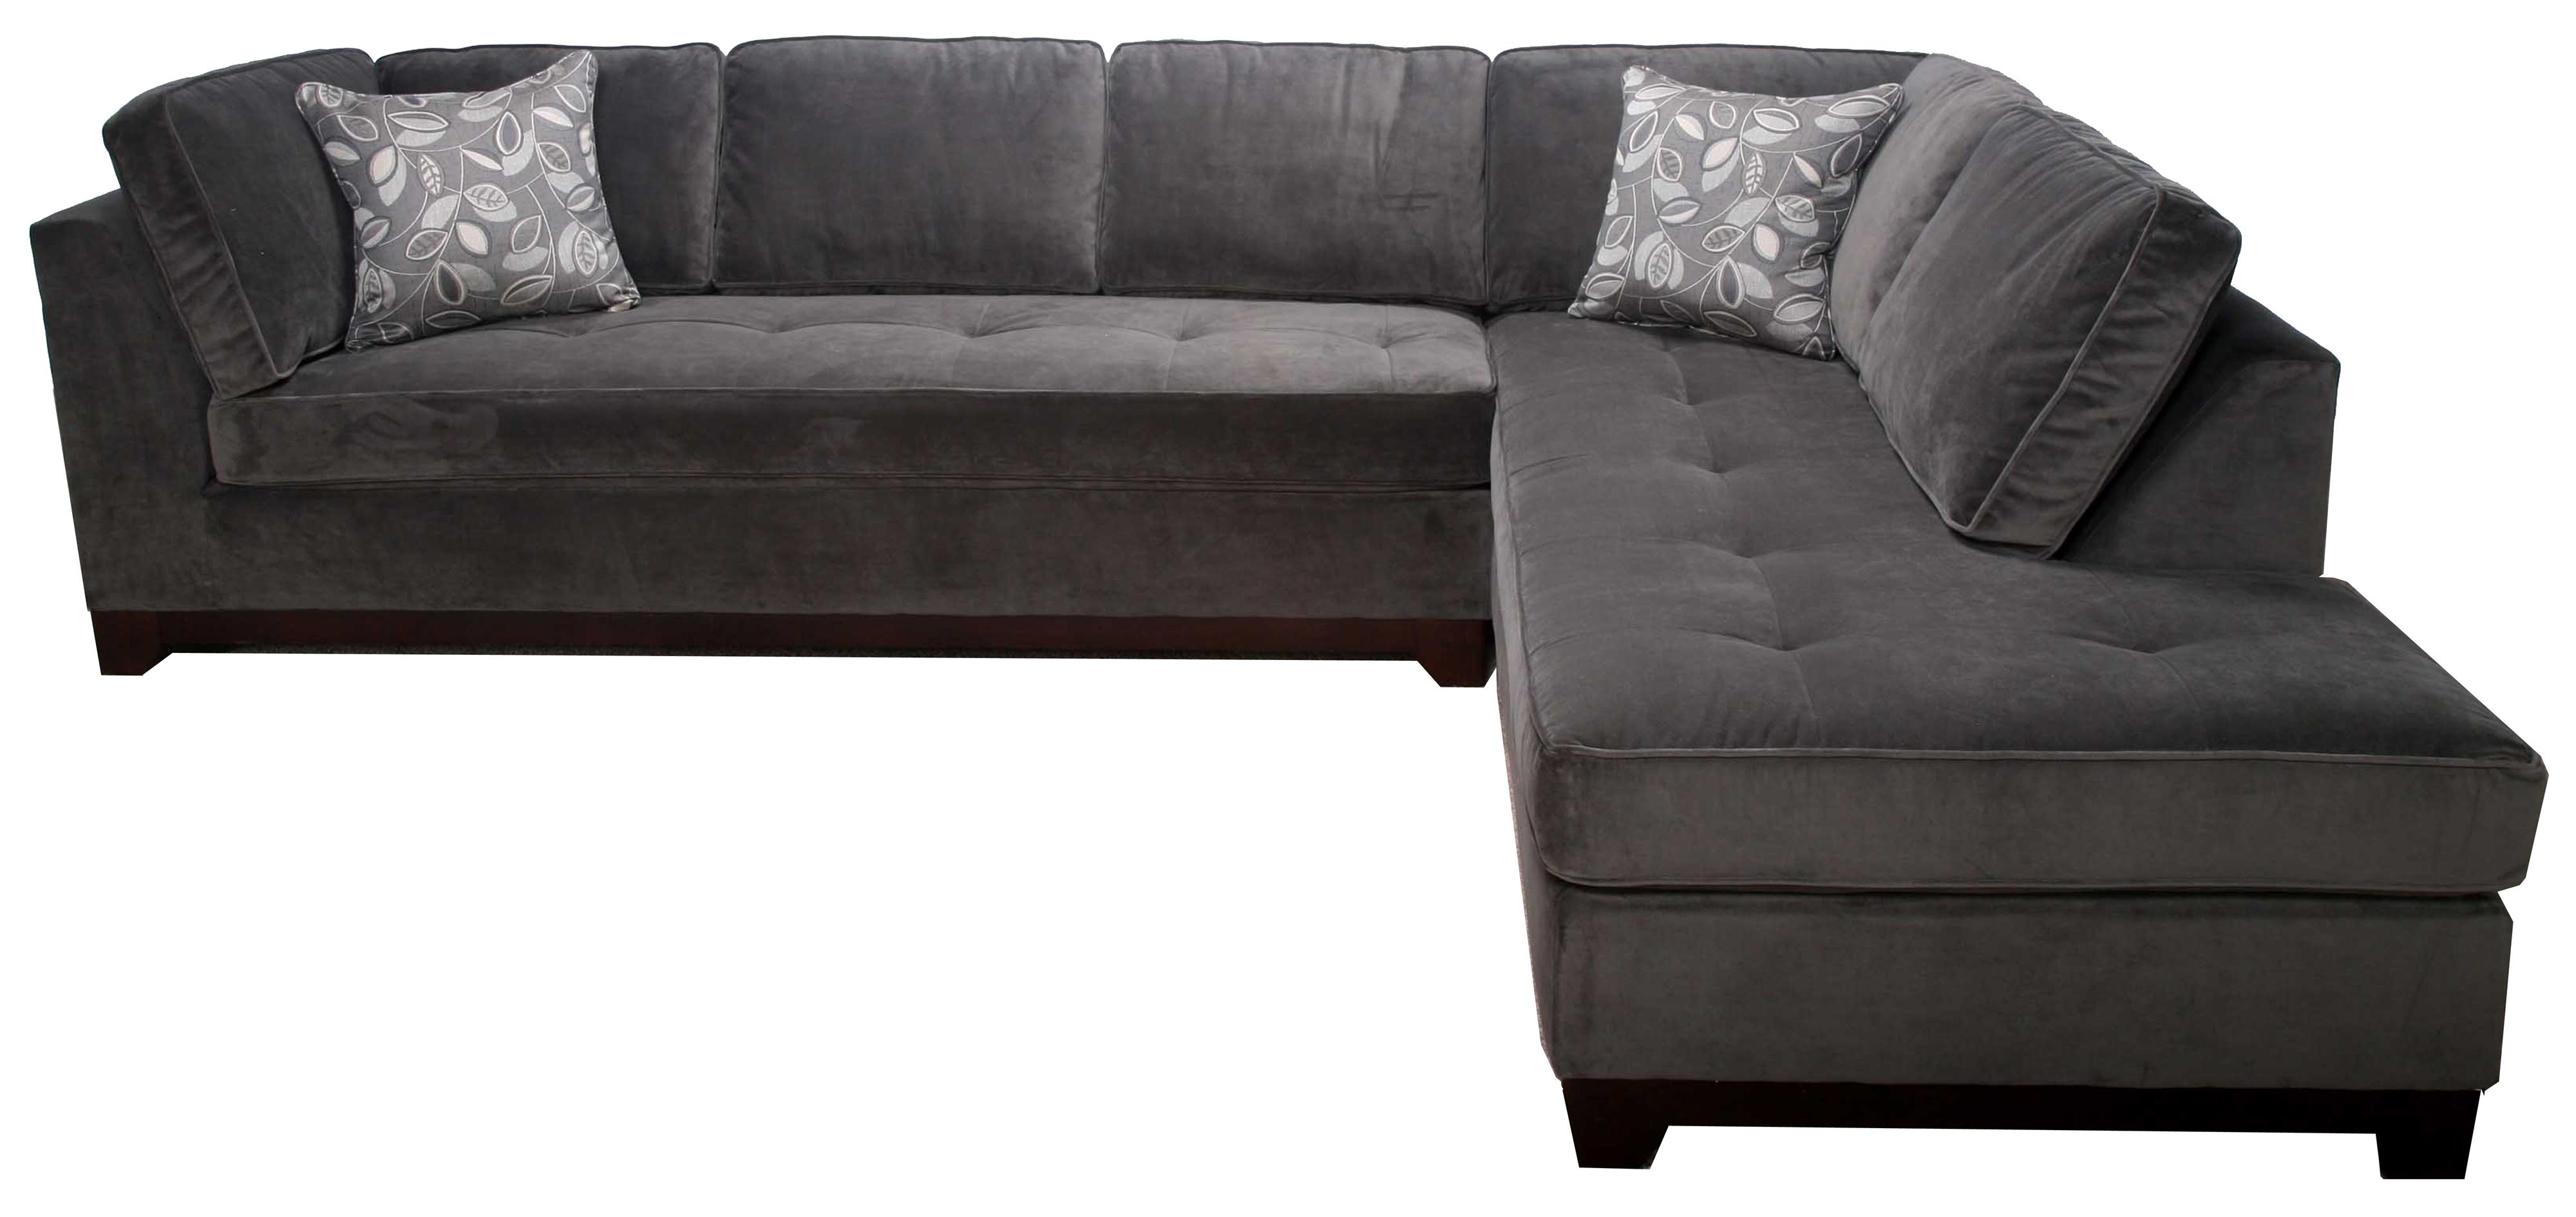 Bauhaus 536A Contemporary 2 Piece Sectional with Chaise AHFA